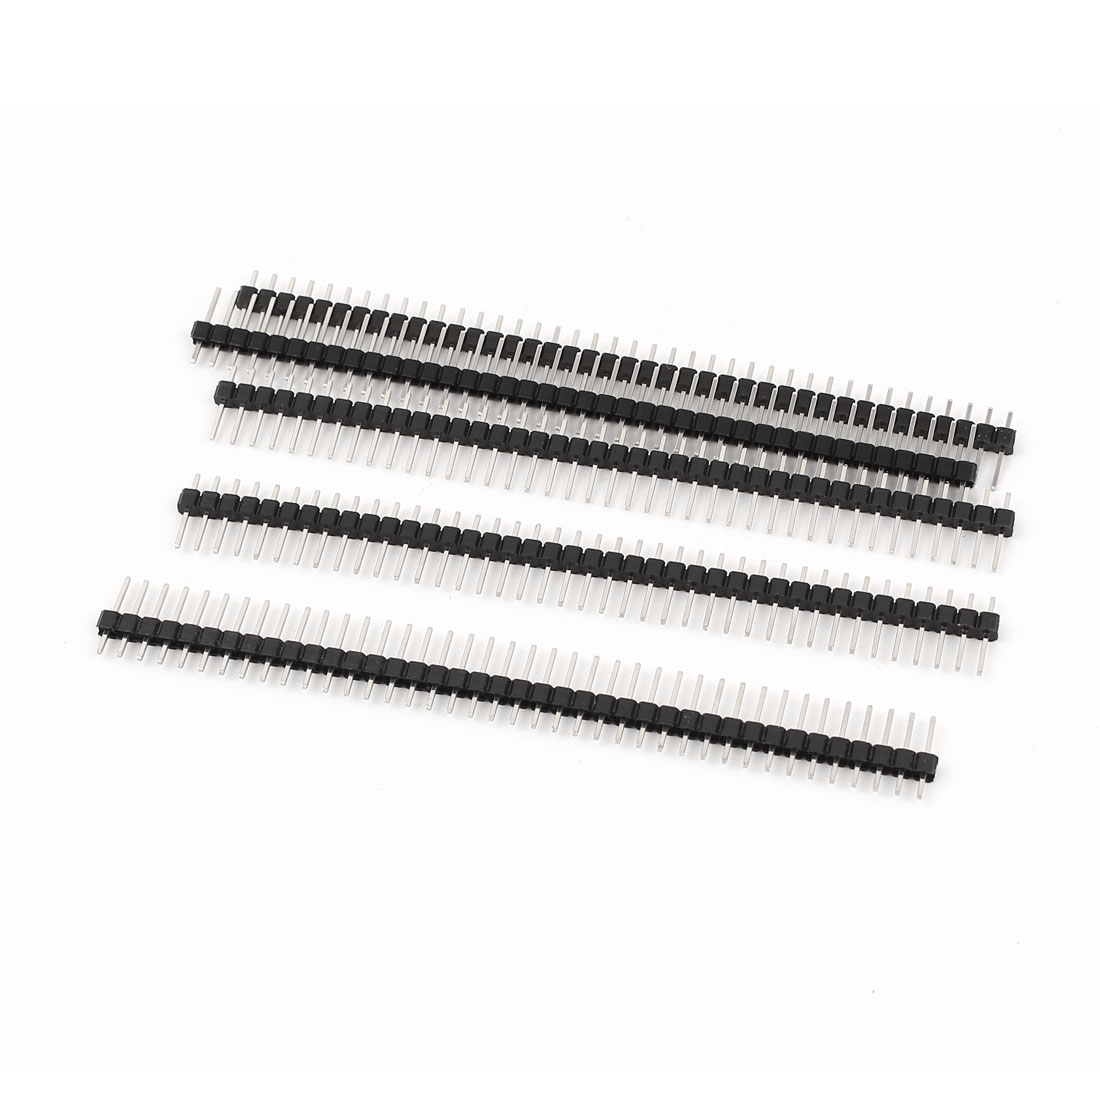 1x40 Pin 2.54mm Pitch Straight Single Row PCB Pin Headers 5 Pieces